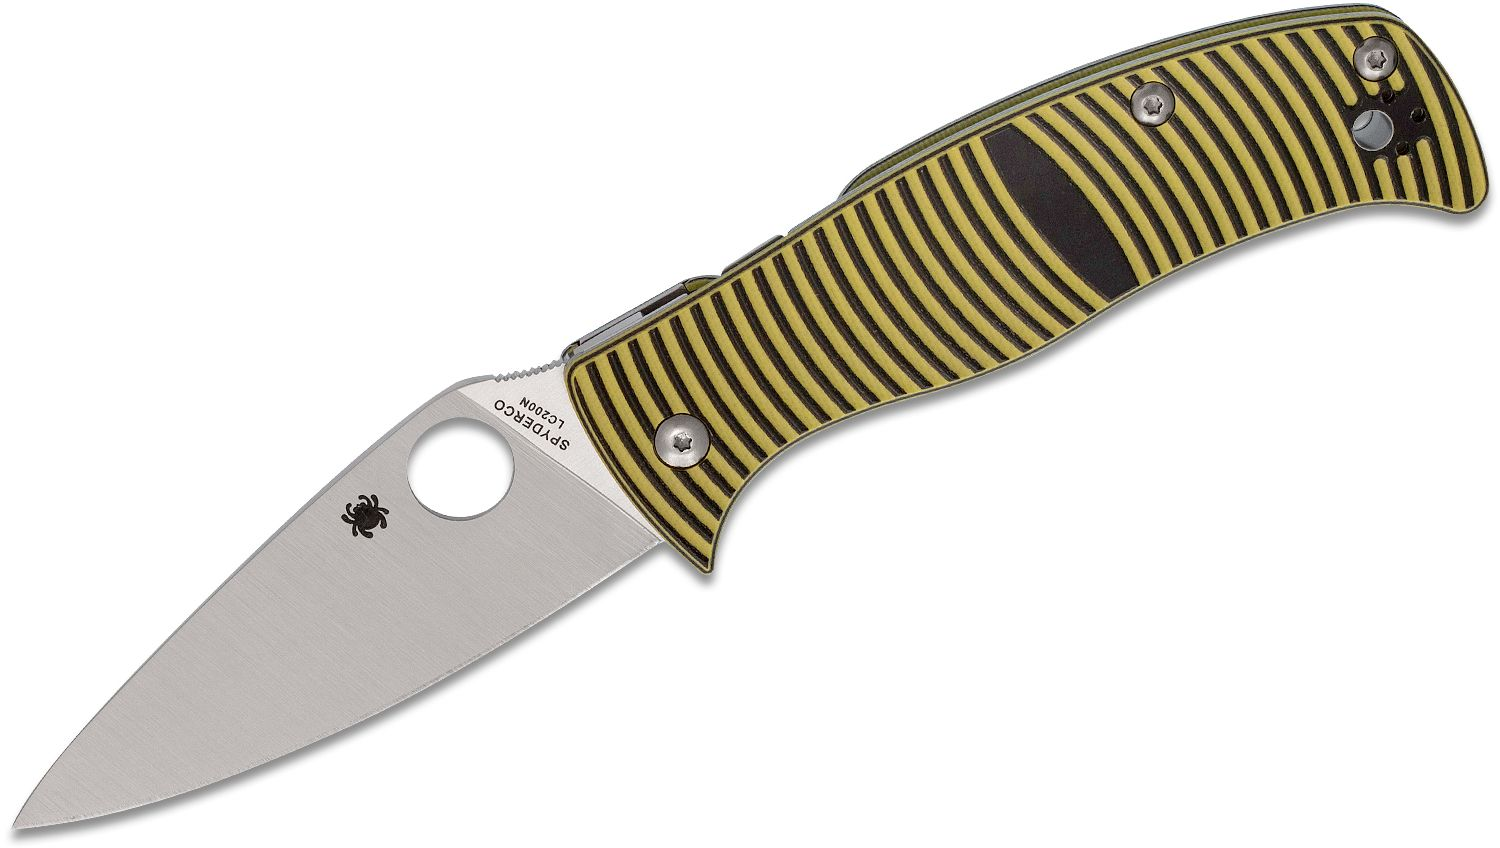 Spyderco Caribbean Folding Knife 3.7 inch Rustproof LC200N Leaf Shaped Plain Blade, 3D Machined G10 Handles